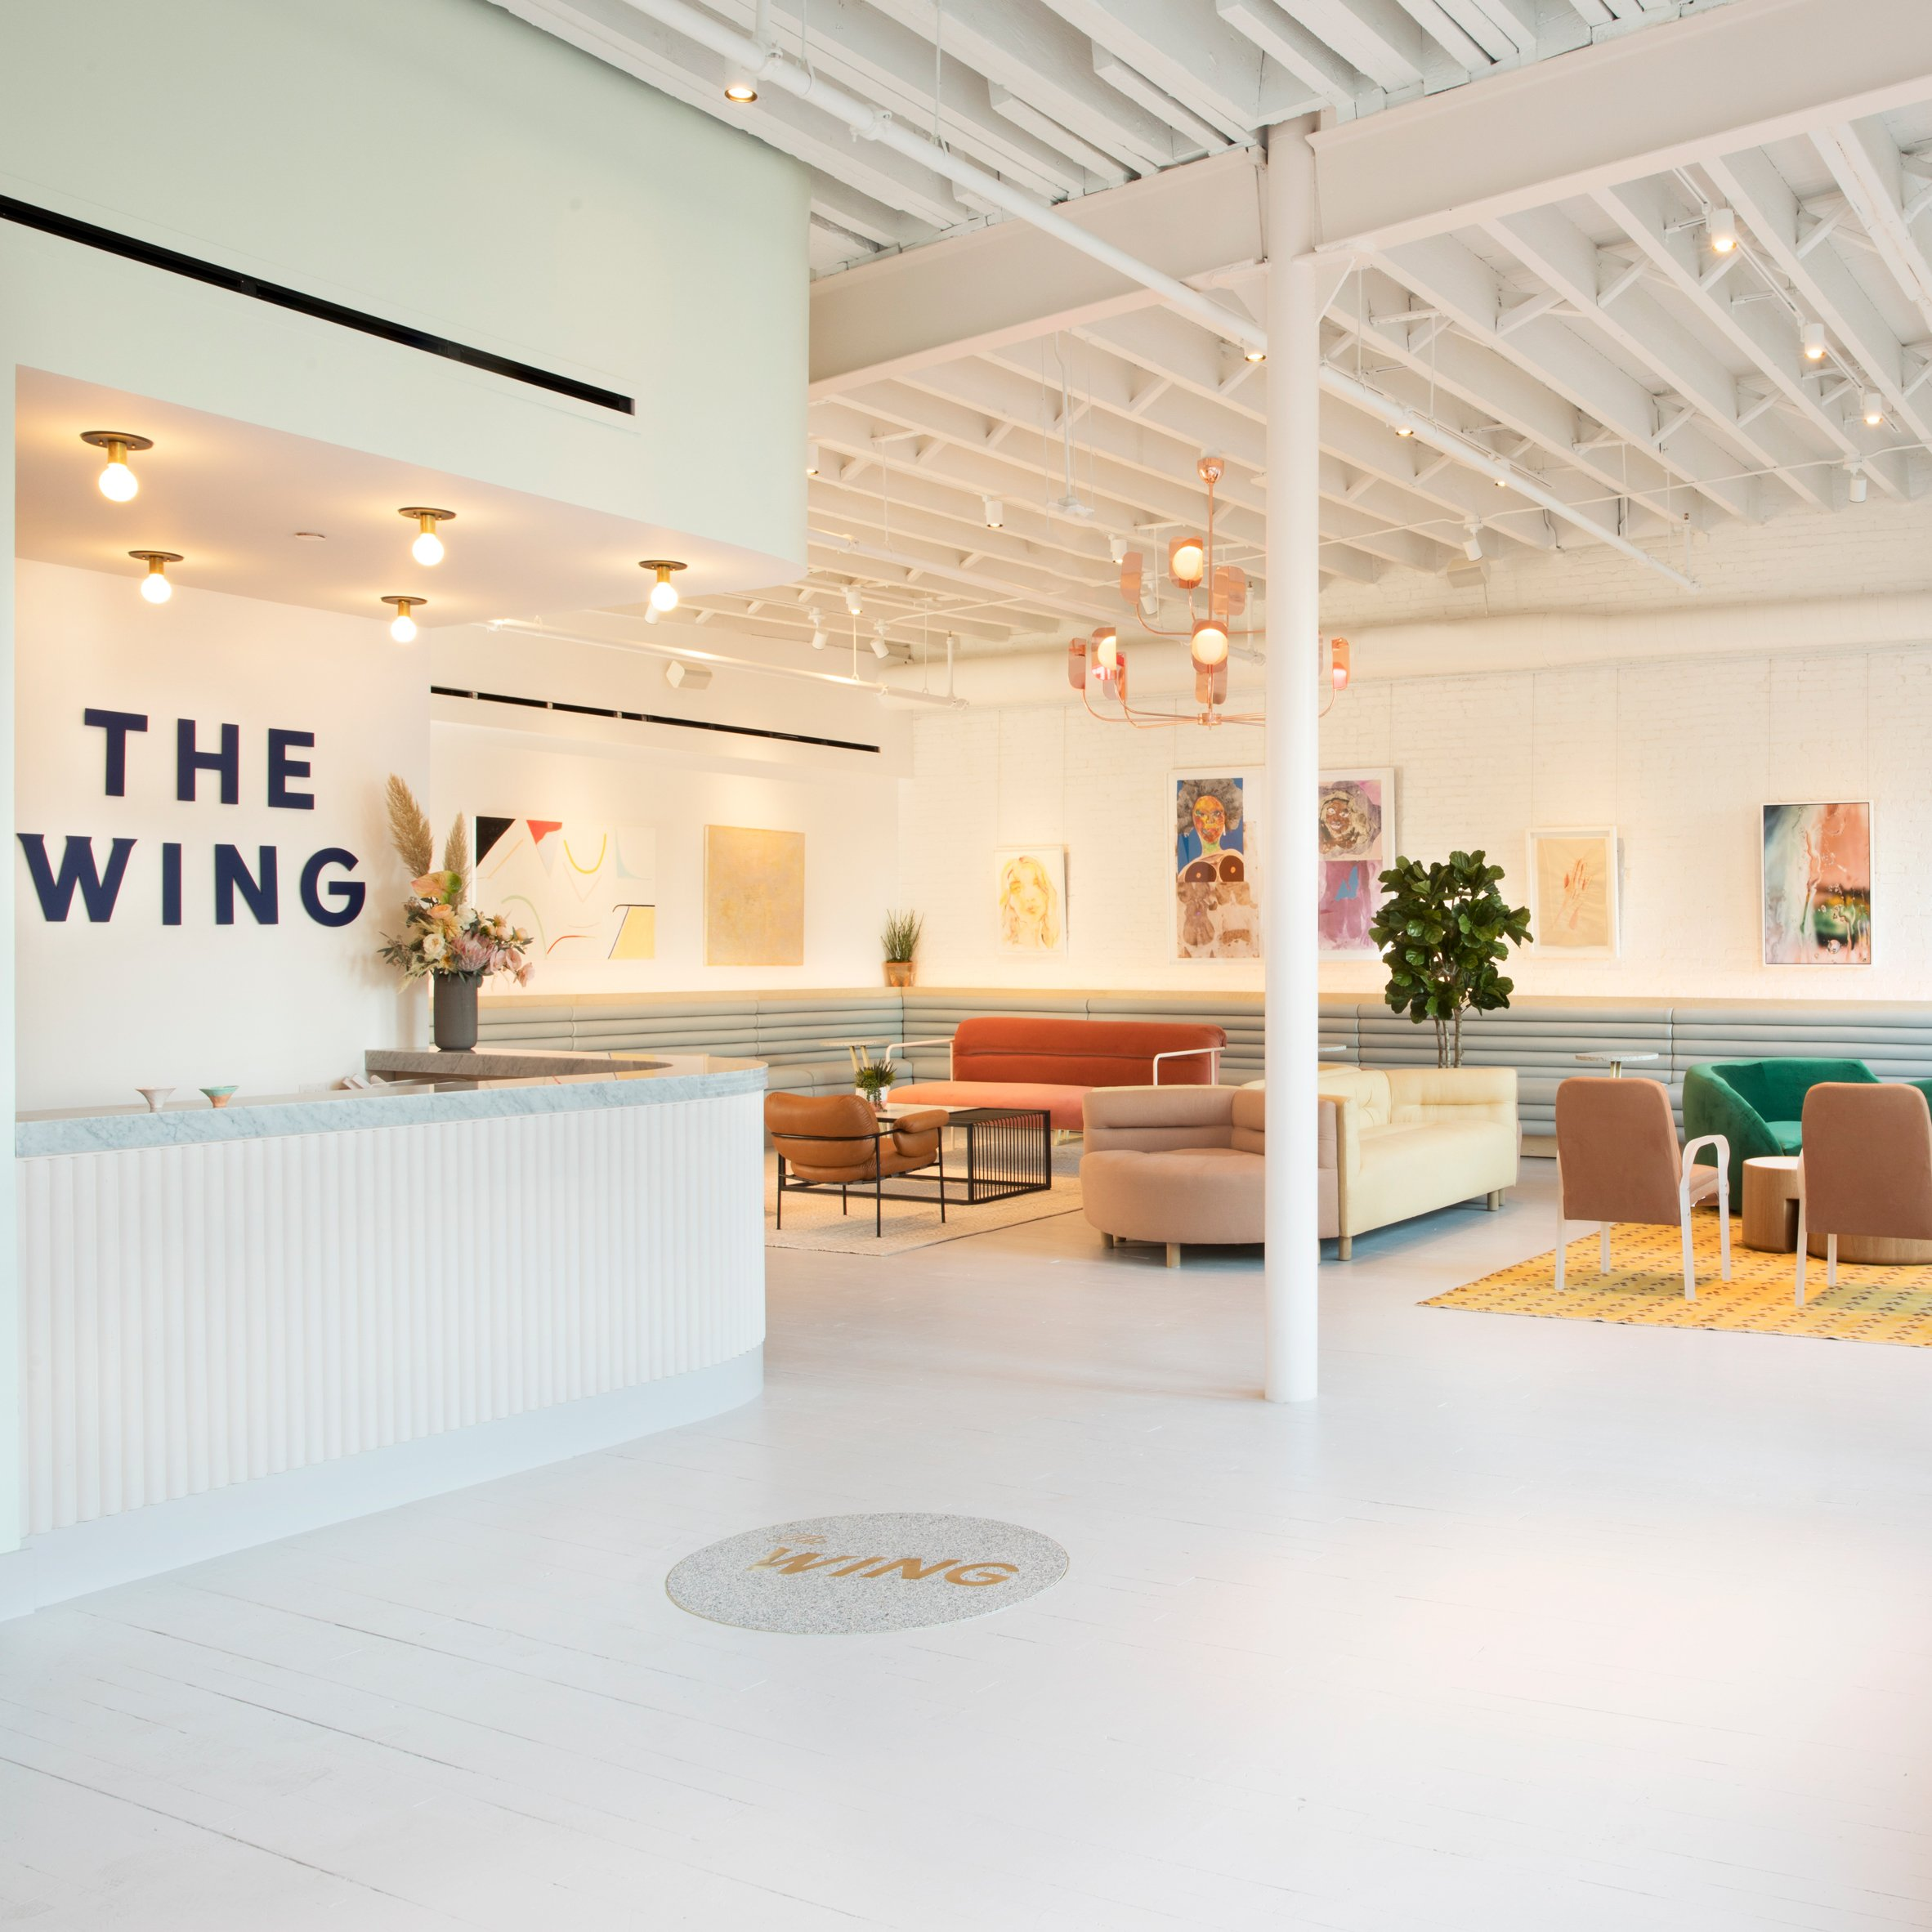 Design and architecture for co-working spaces | Dezeen